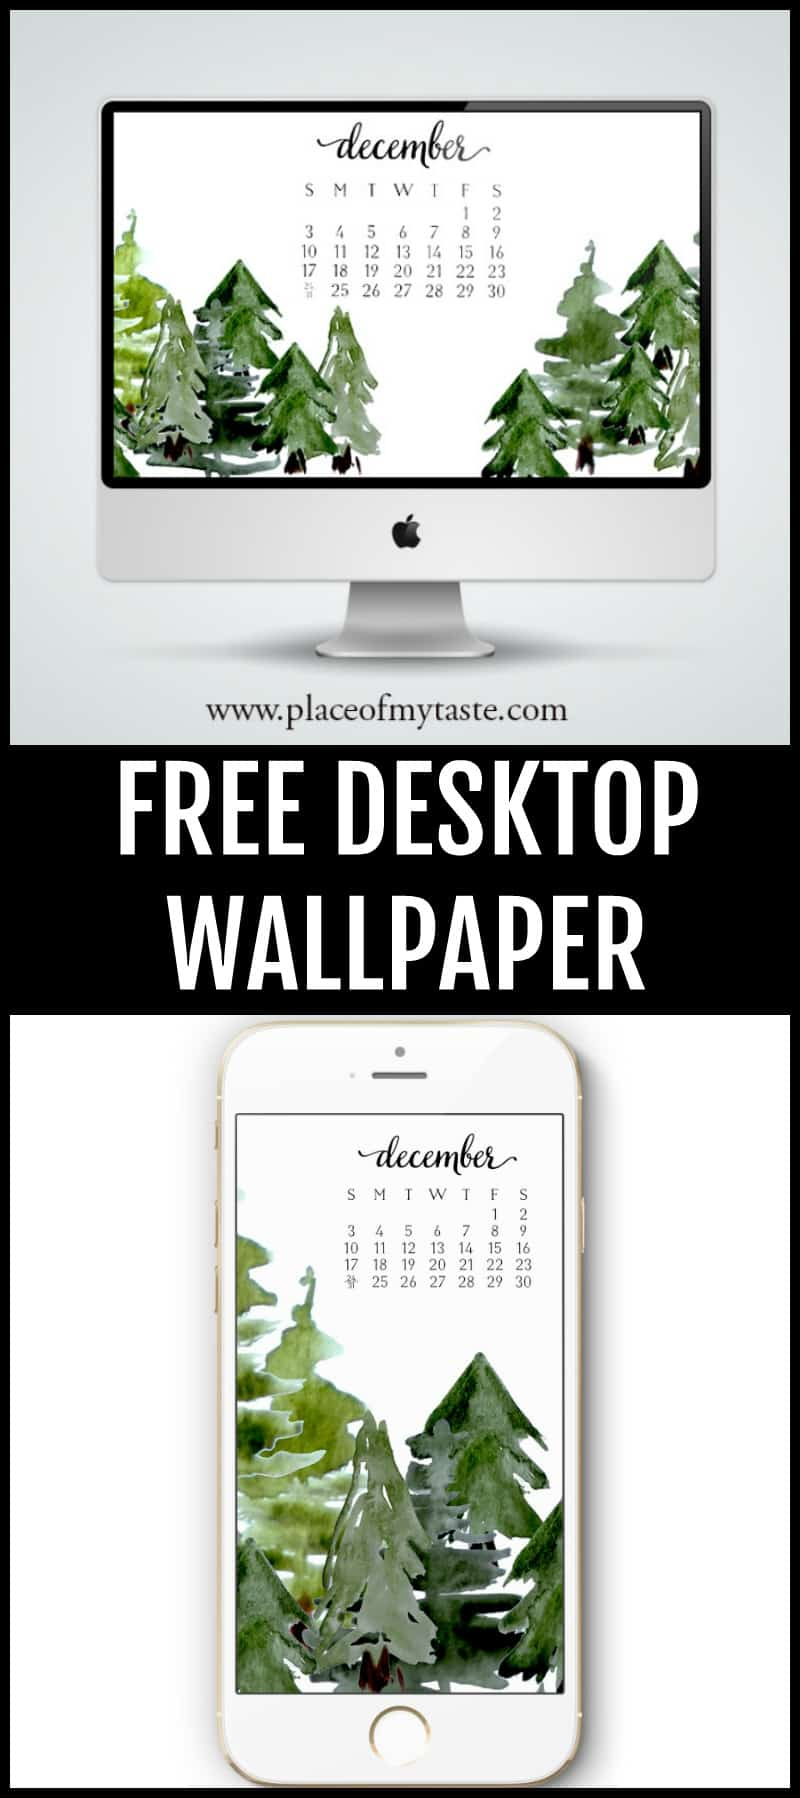 Free Desktop Wallpaper! Sign up for her newsletters and get your pretty wallpapers in your mailbox every month!